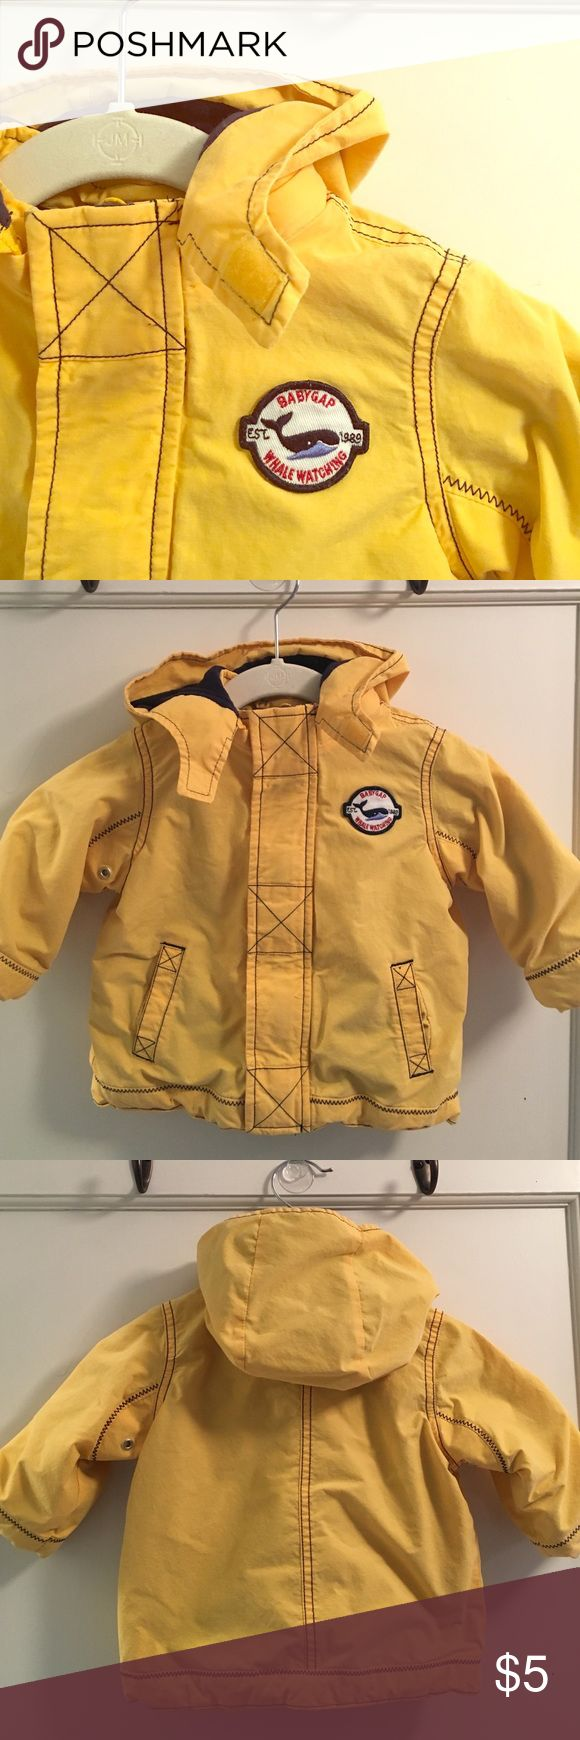 Boy's Gap jacket.  Size 6 to 12M Great condition, no spots or stains.  Washed and dried.  Lined.  It's not a winter jacket...but it's also not a light jacket.  It's great for the cooker days of fall and spring.  I bought this on consignment. Baby Gap Jackets & Coats